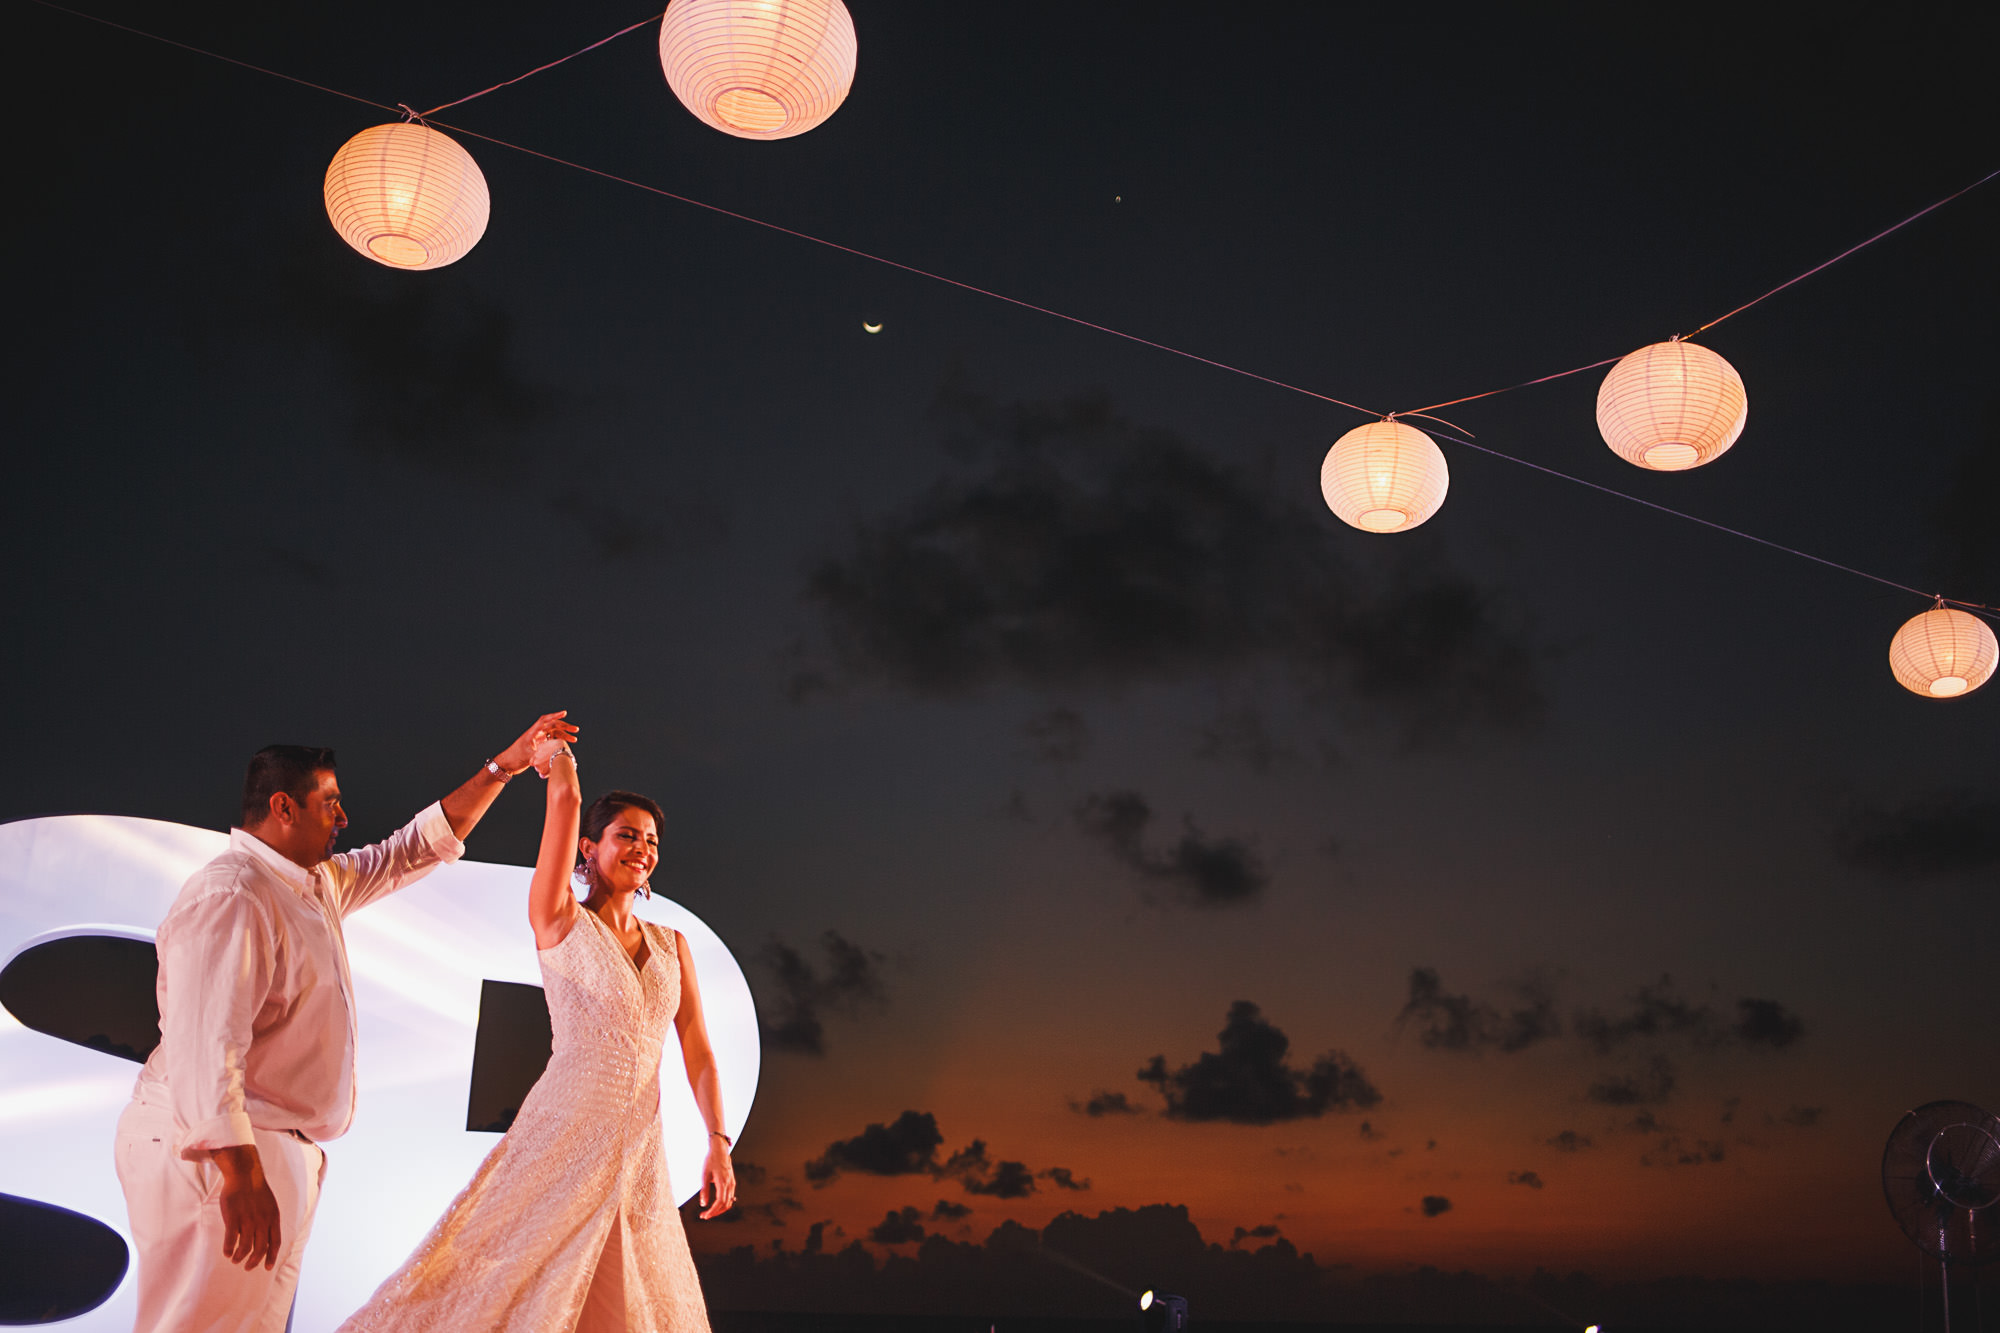 Destination Wedding Khao Lak Thailand - Copyright ARJ Photography®